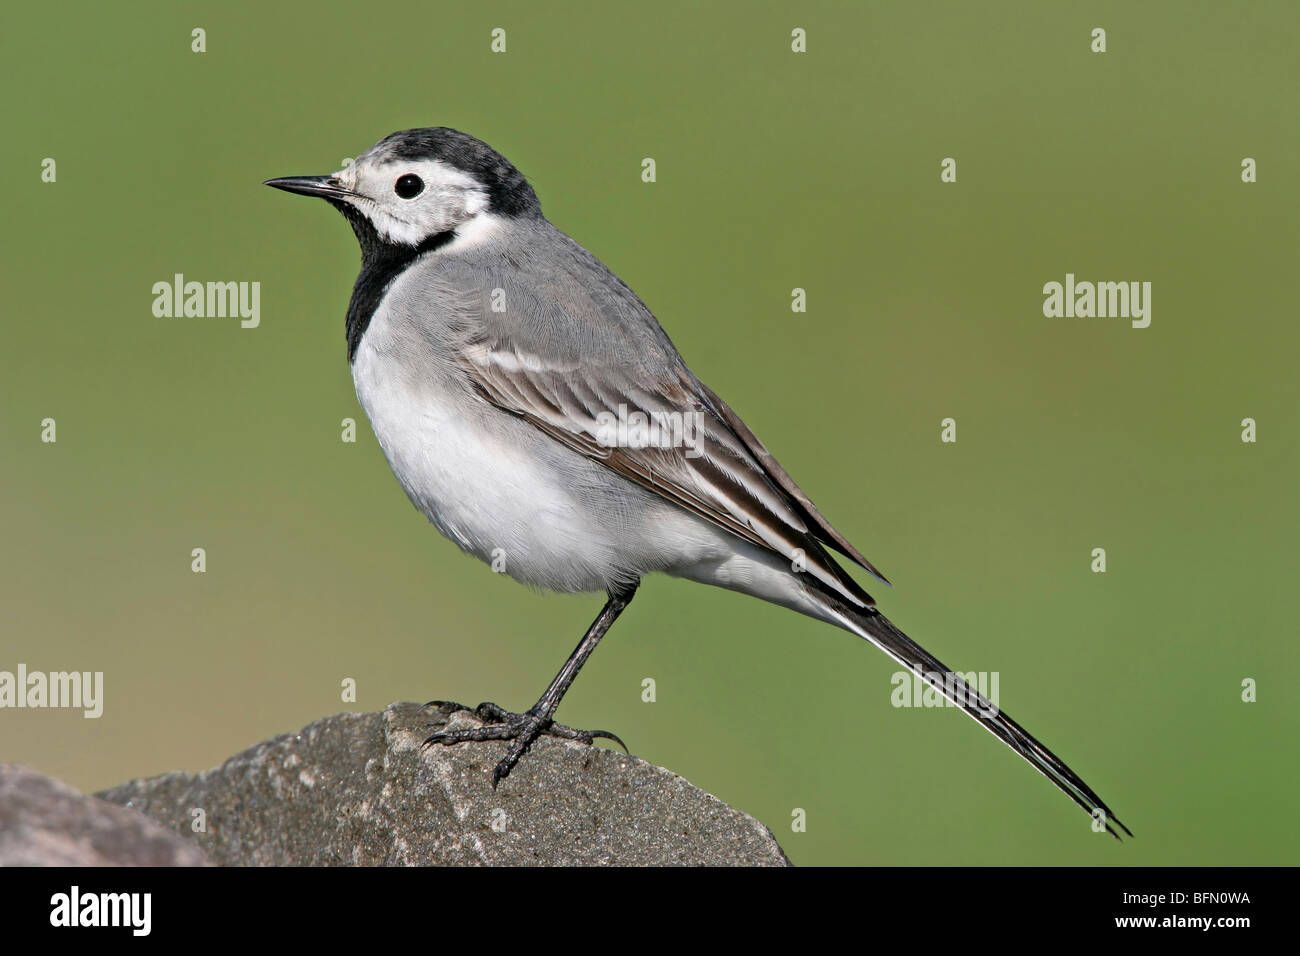 pied wagtail (Motacilla alba), sitting on a stone, Germany - Stock Image